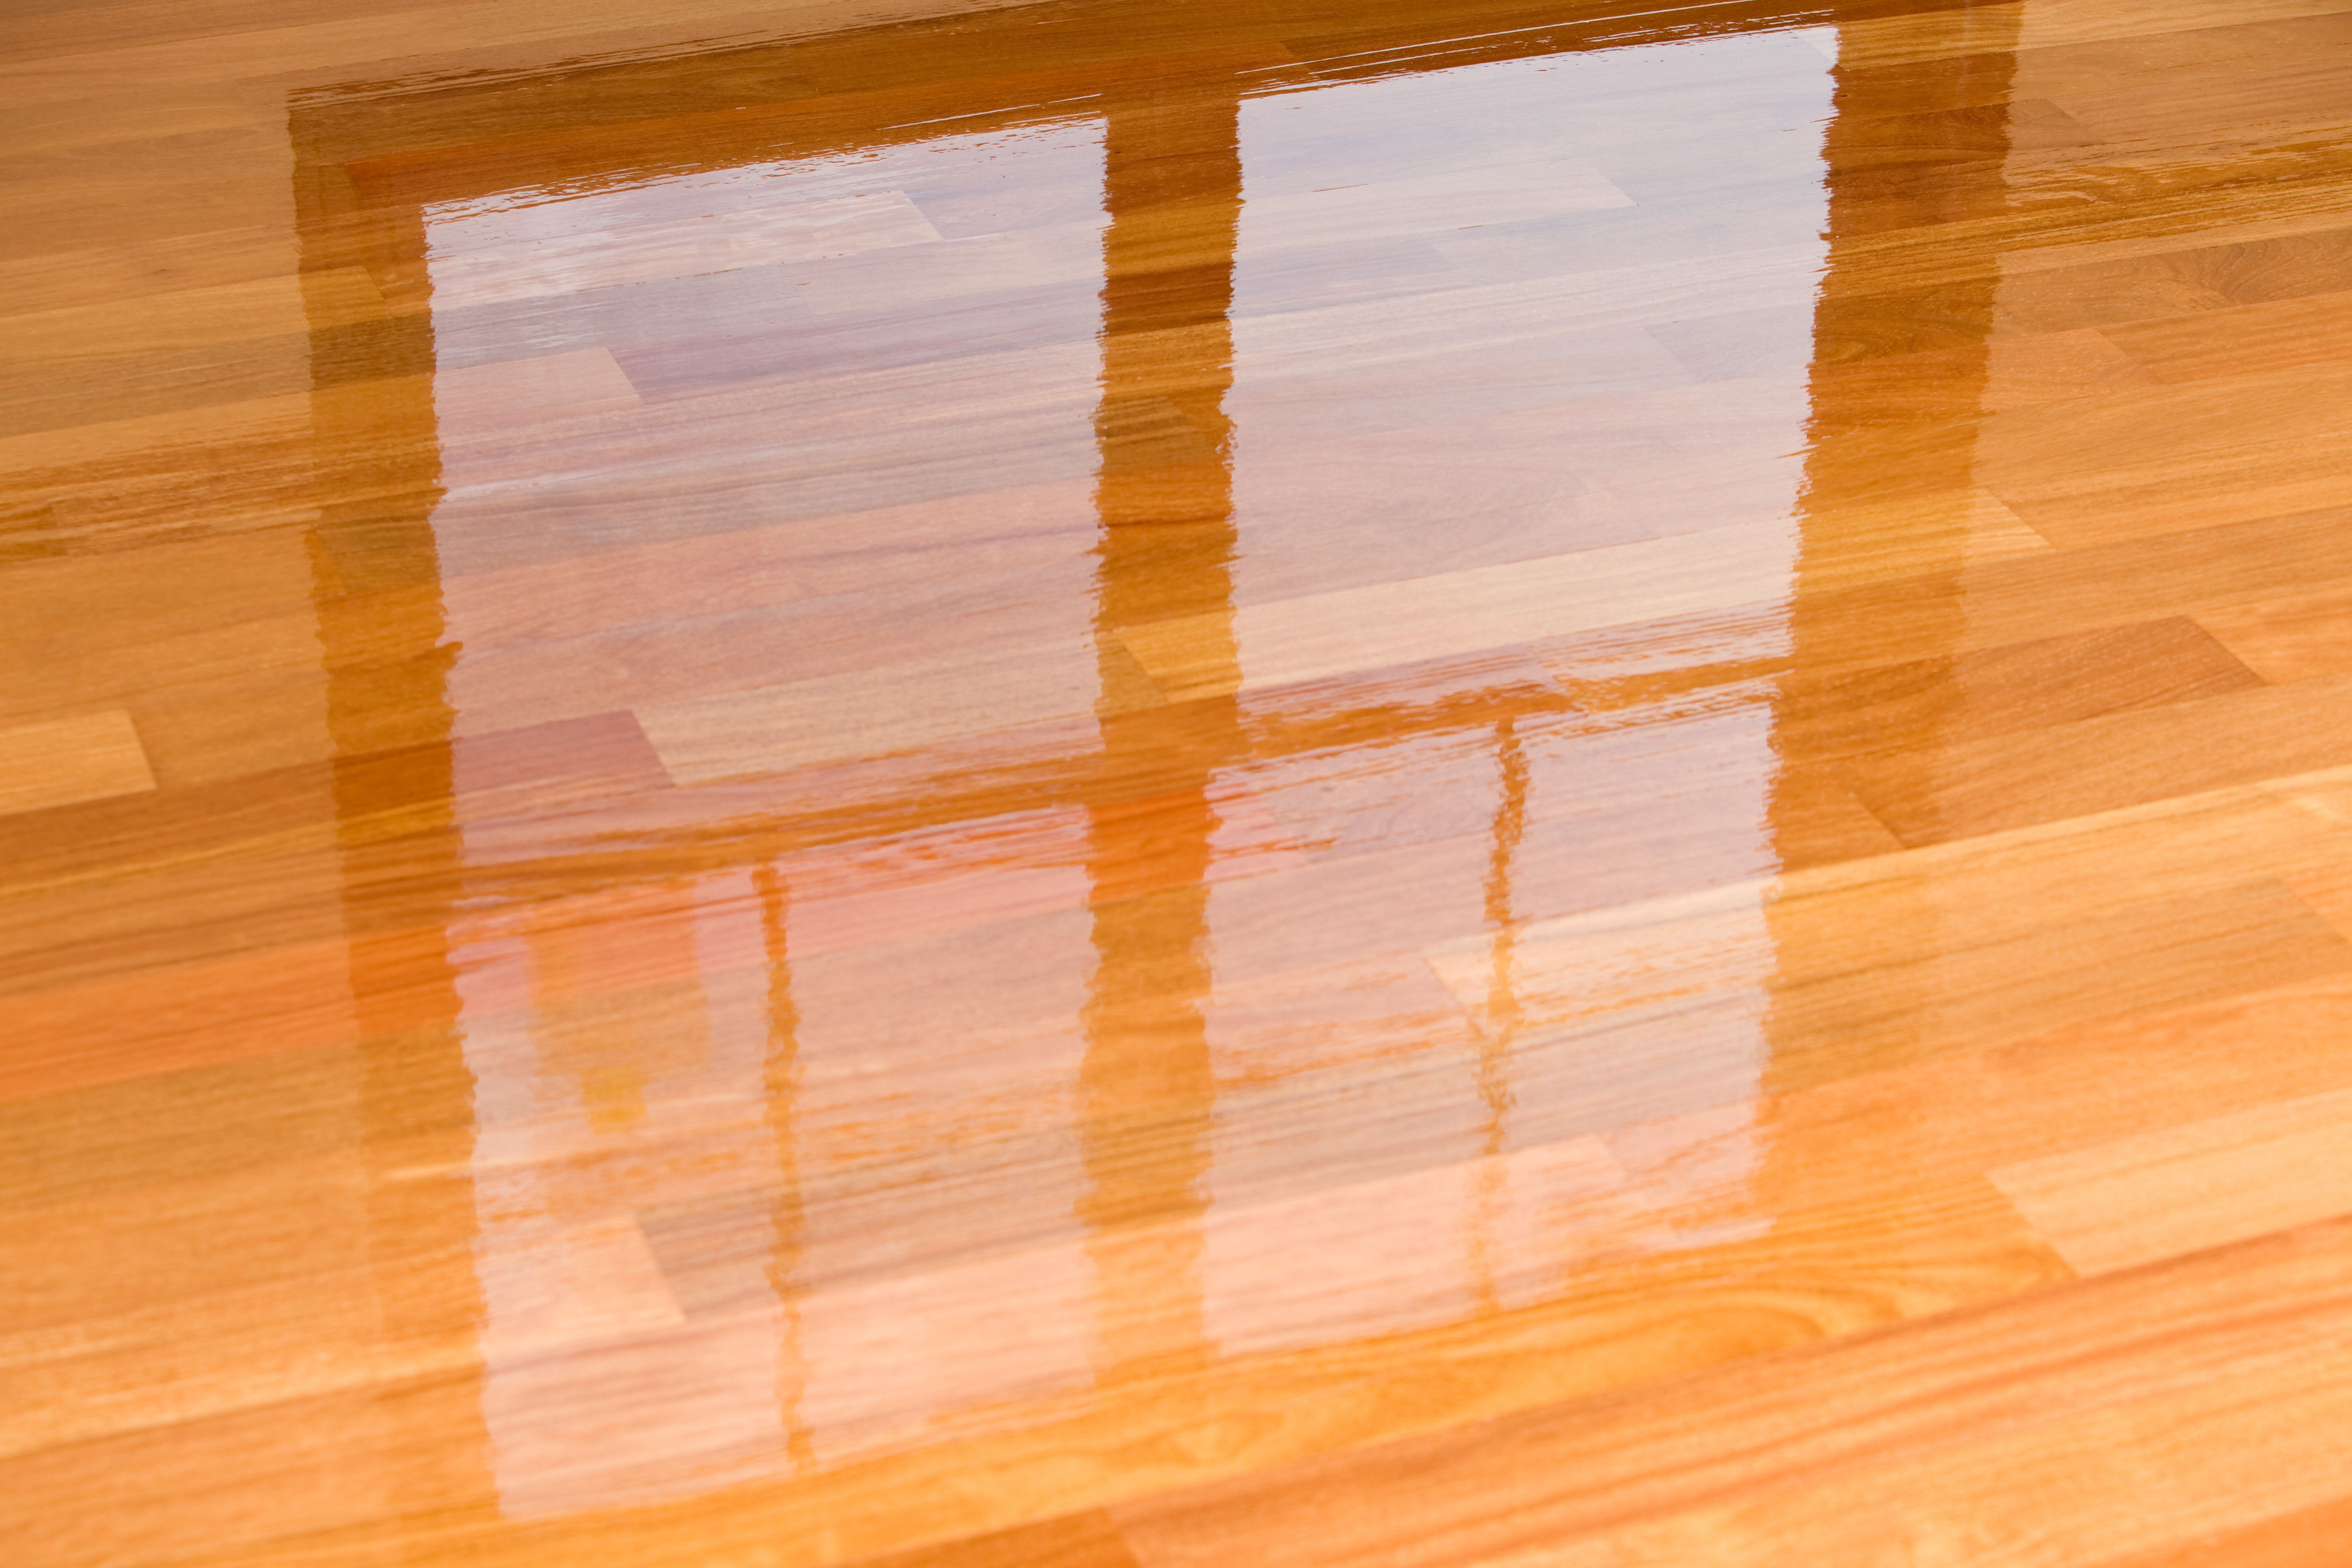 can you have two different types of hardwood floors of guide to laminate flooring water and damage repair intended for wet polyurethane on new hardwood floor with window reflection 183846705 582e34da3df78c6f6a403968